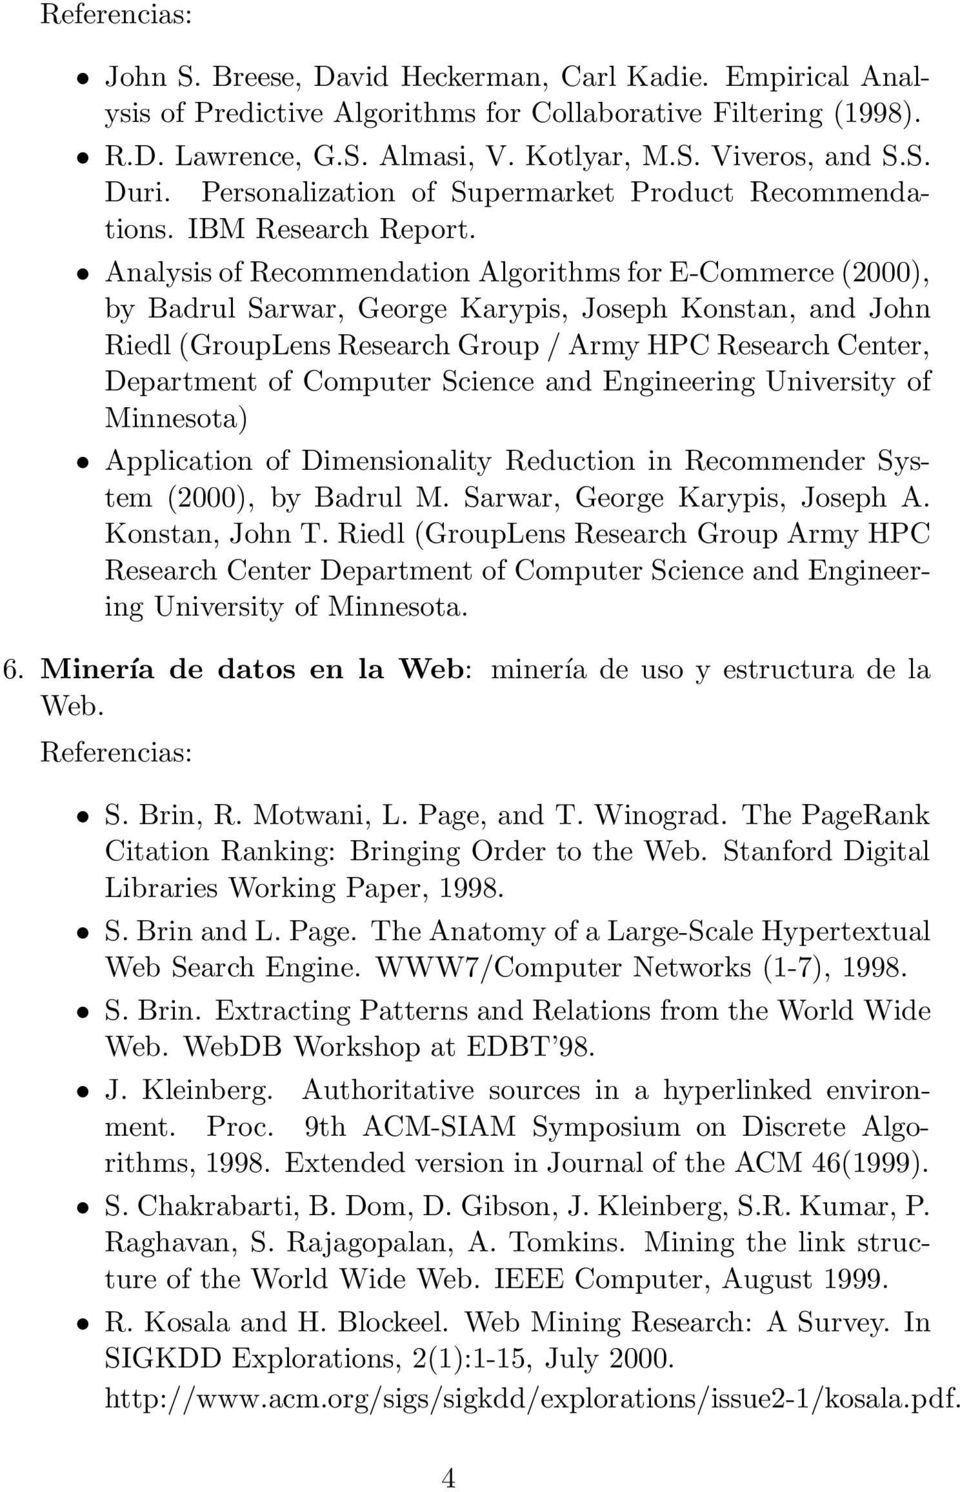 Analysis of Recommendation Algorithms for E-Commerce (2000), by Badrul Sarwar, George Karypis, Joseph Konstan, and John Riedl (GroupLens Research Group / Army HPC Research Center, Department of